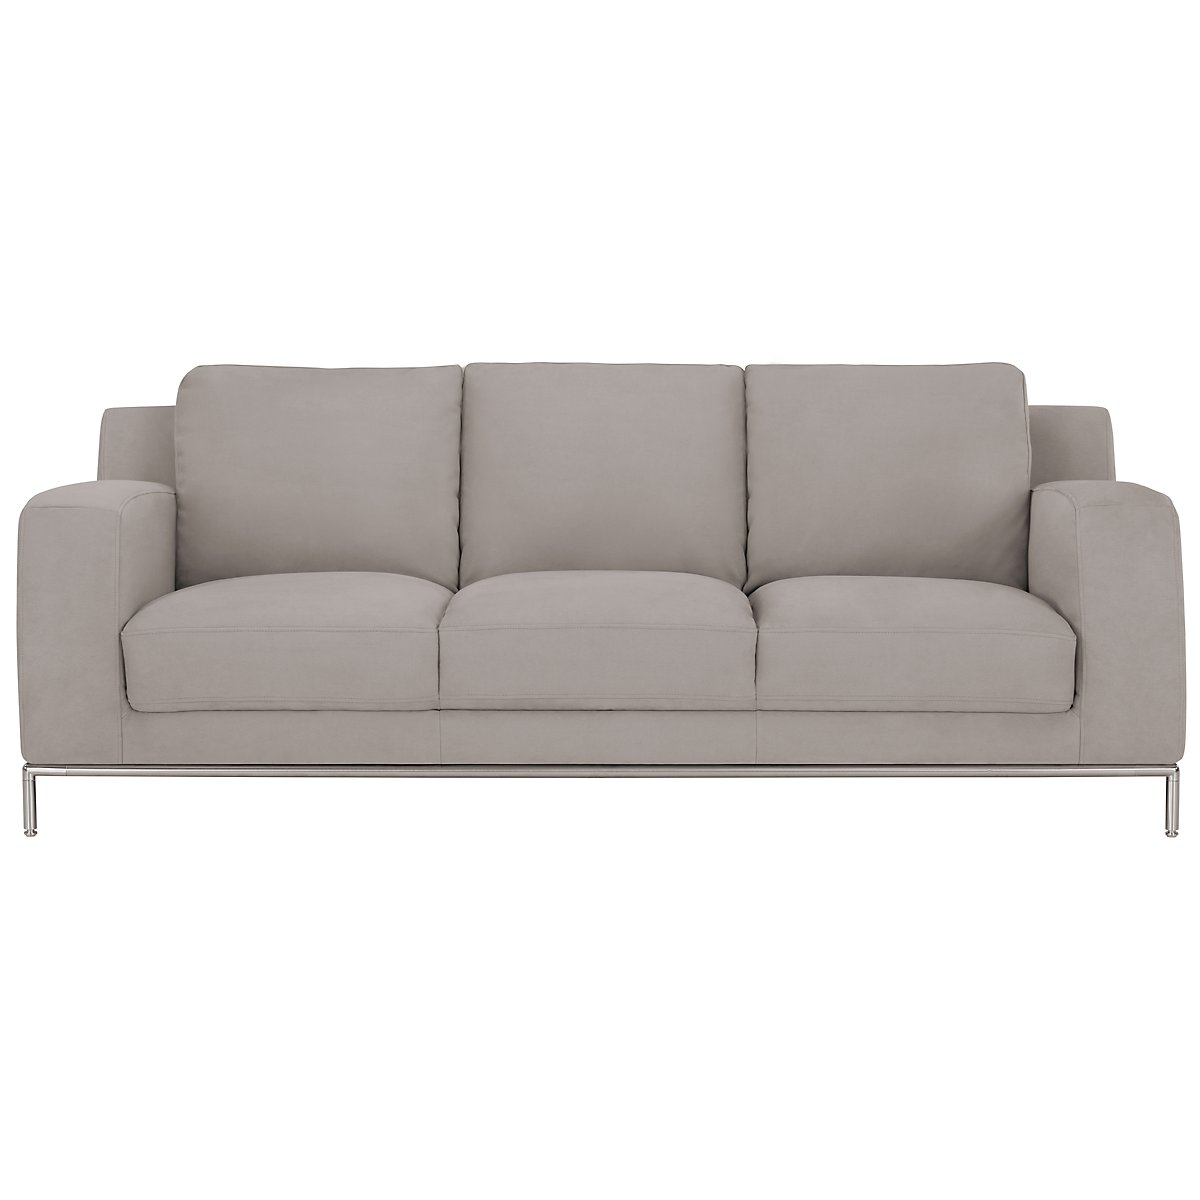 City furniture wynn lt gray microfiber sofa for Microfiber sectional sofa